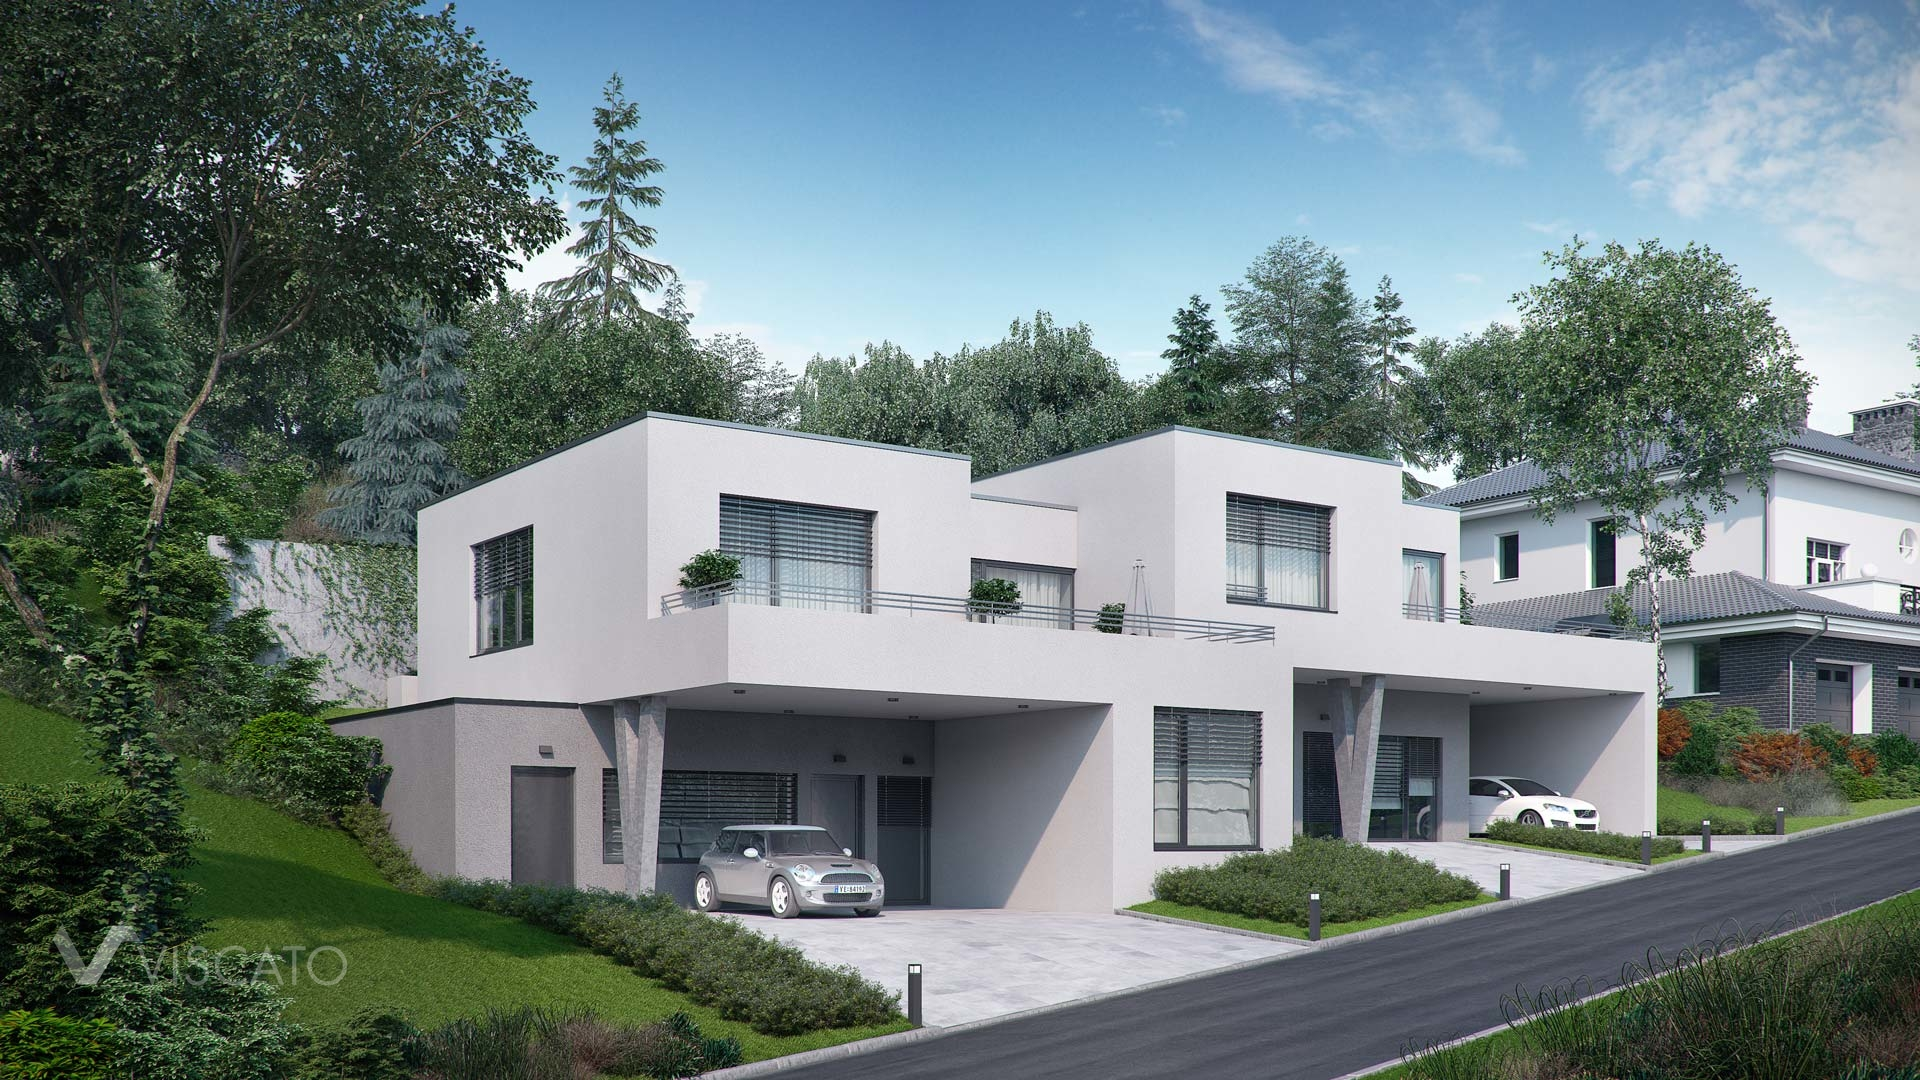 Visualization of duplex house in Walding, Austria - front elevation with street